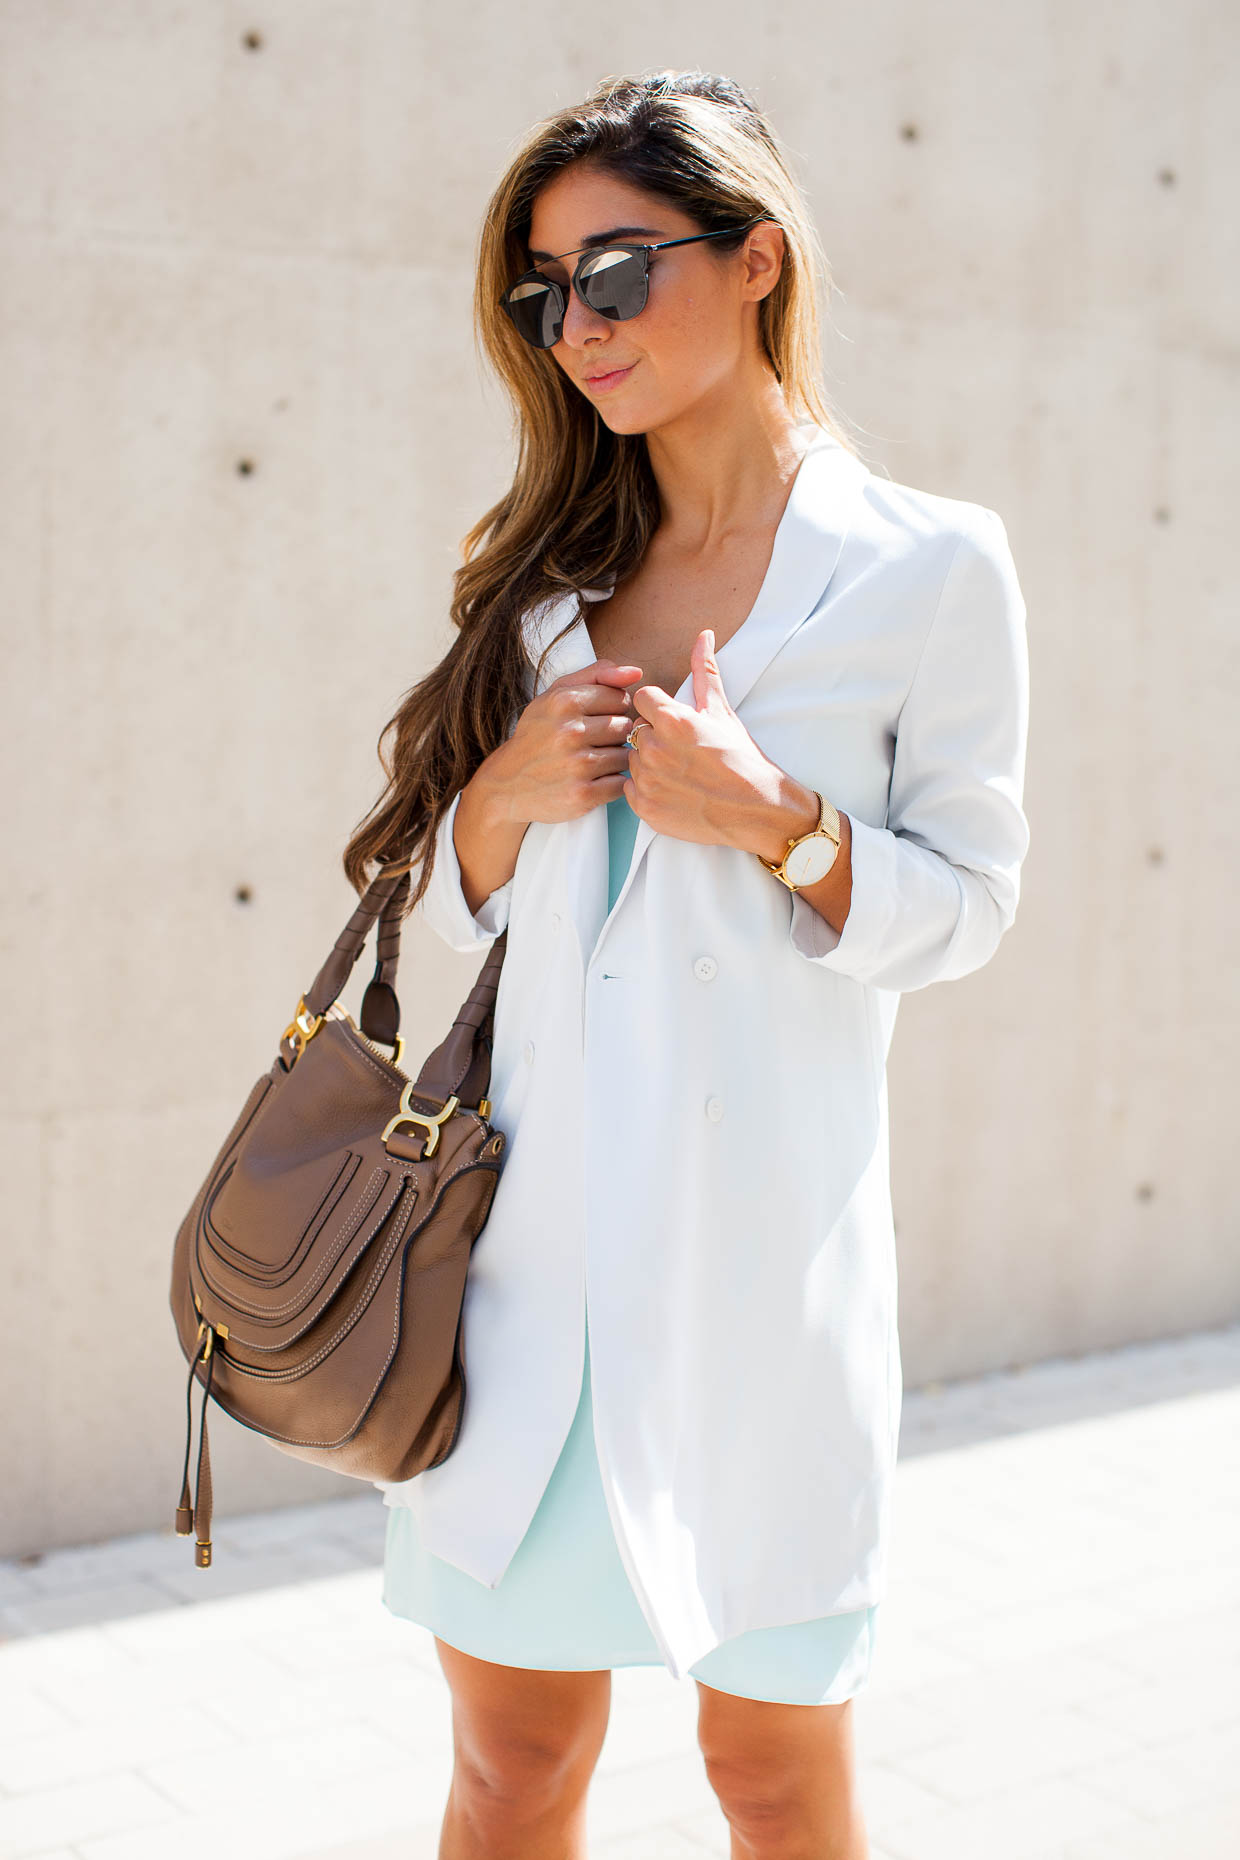 The Darling Detail is wearing a Topshop Crisscross Strap Slipdress, a Topshop Slouchy Longline Blazer, Westward Leaning Flower 1 Sunglasses, a Larsson & Jennings 'Lugano' Mesh Strap Watch, and is holding a Chloe 'Marcie' Small Leather Satchel.